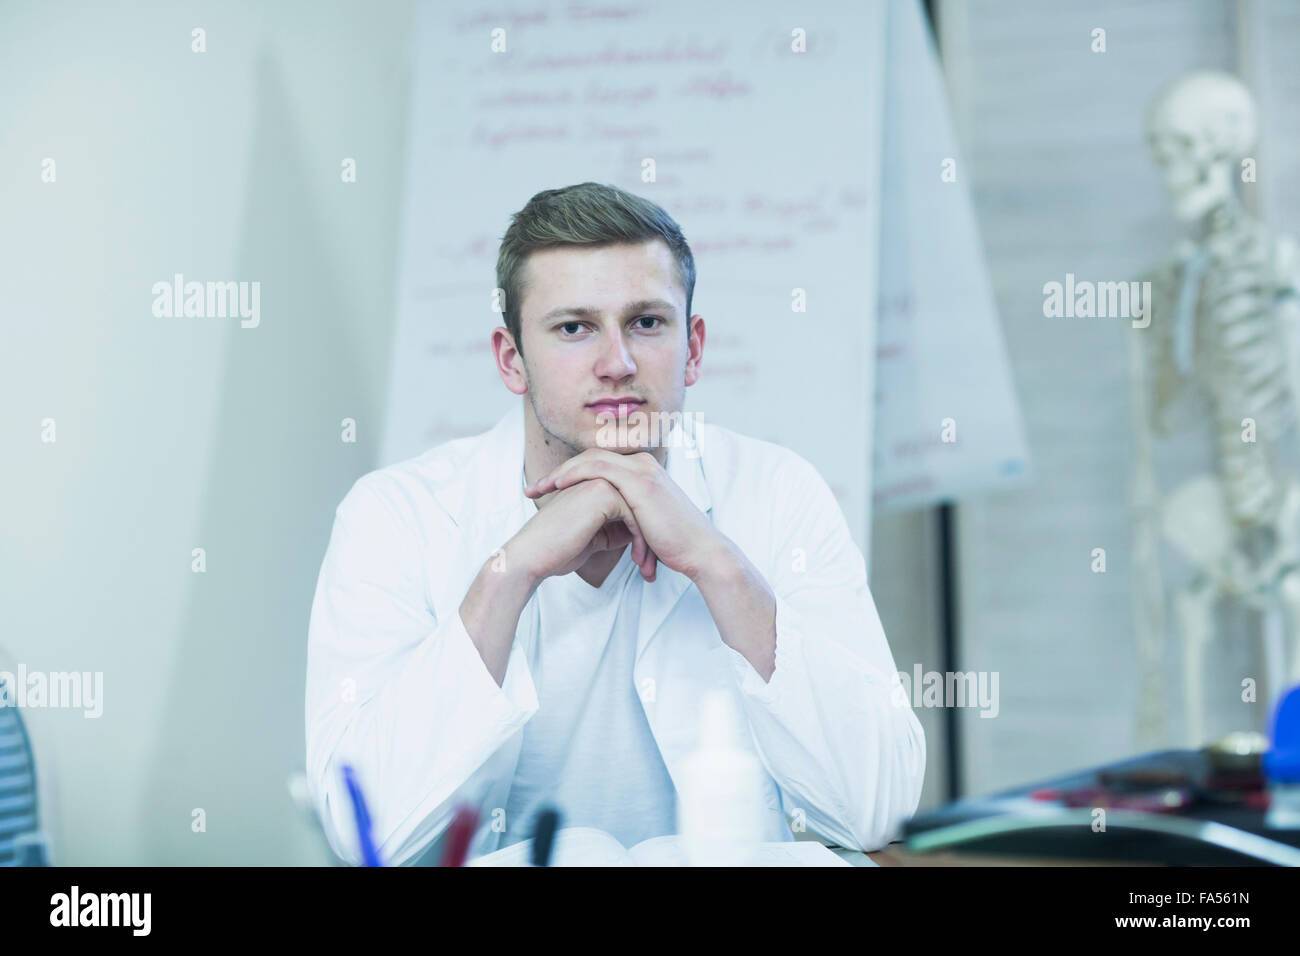 Portrait of a young doctor sitting in his office and skeleton in the background, Baden-Württemberg, Germany - Stock Image